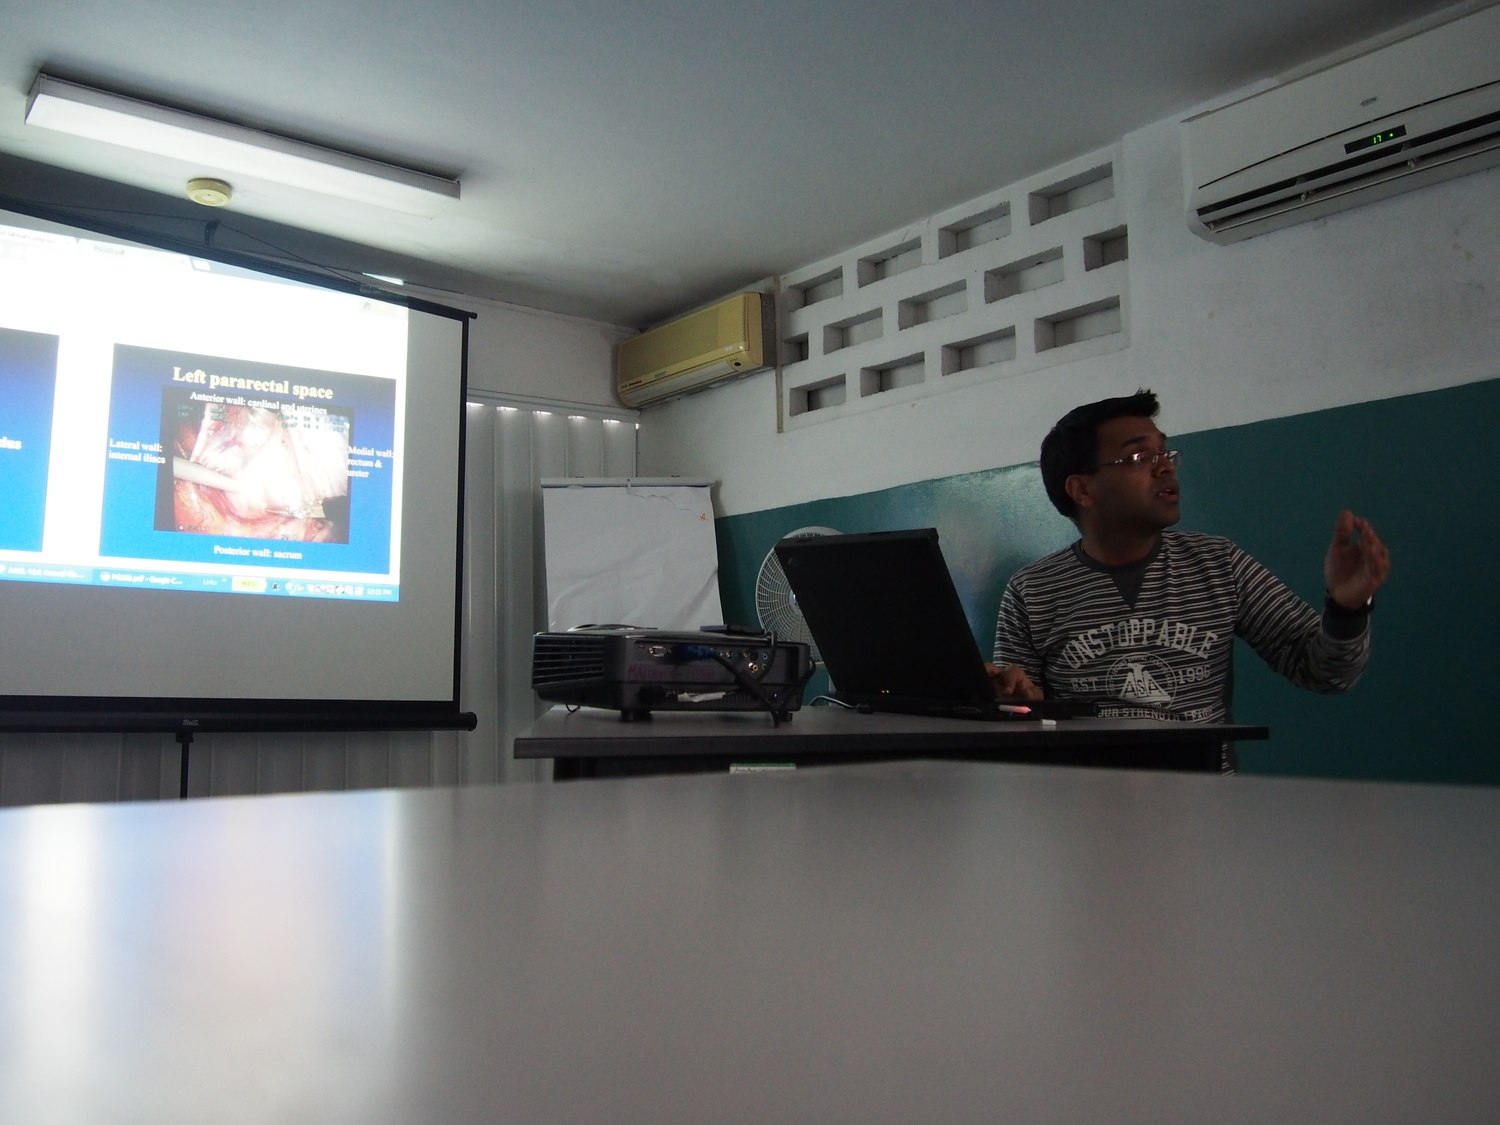 A lecture on pelvic anatomy for pelvic surgery